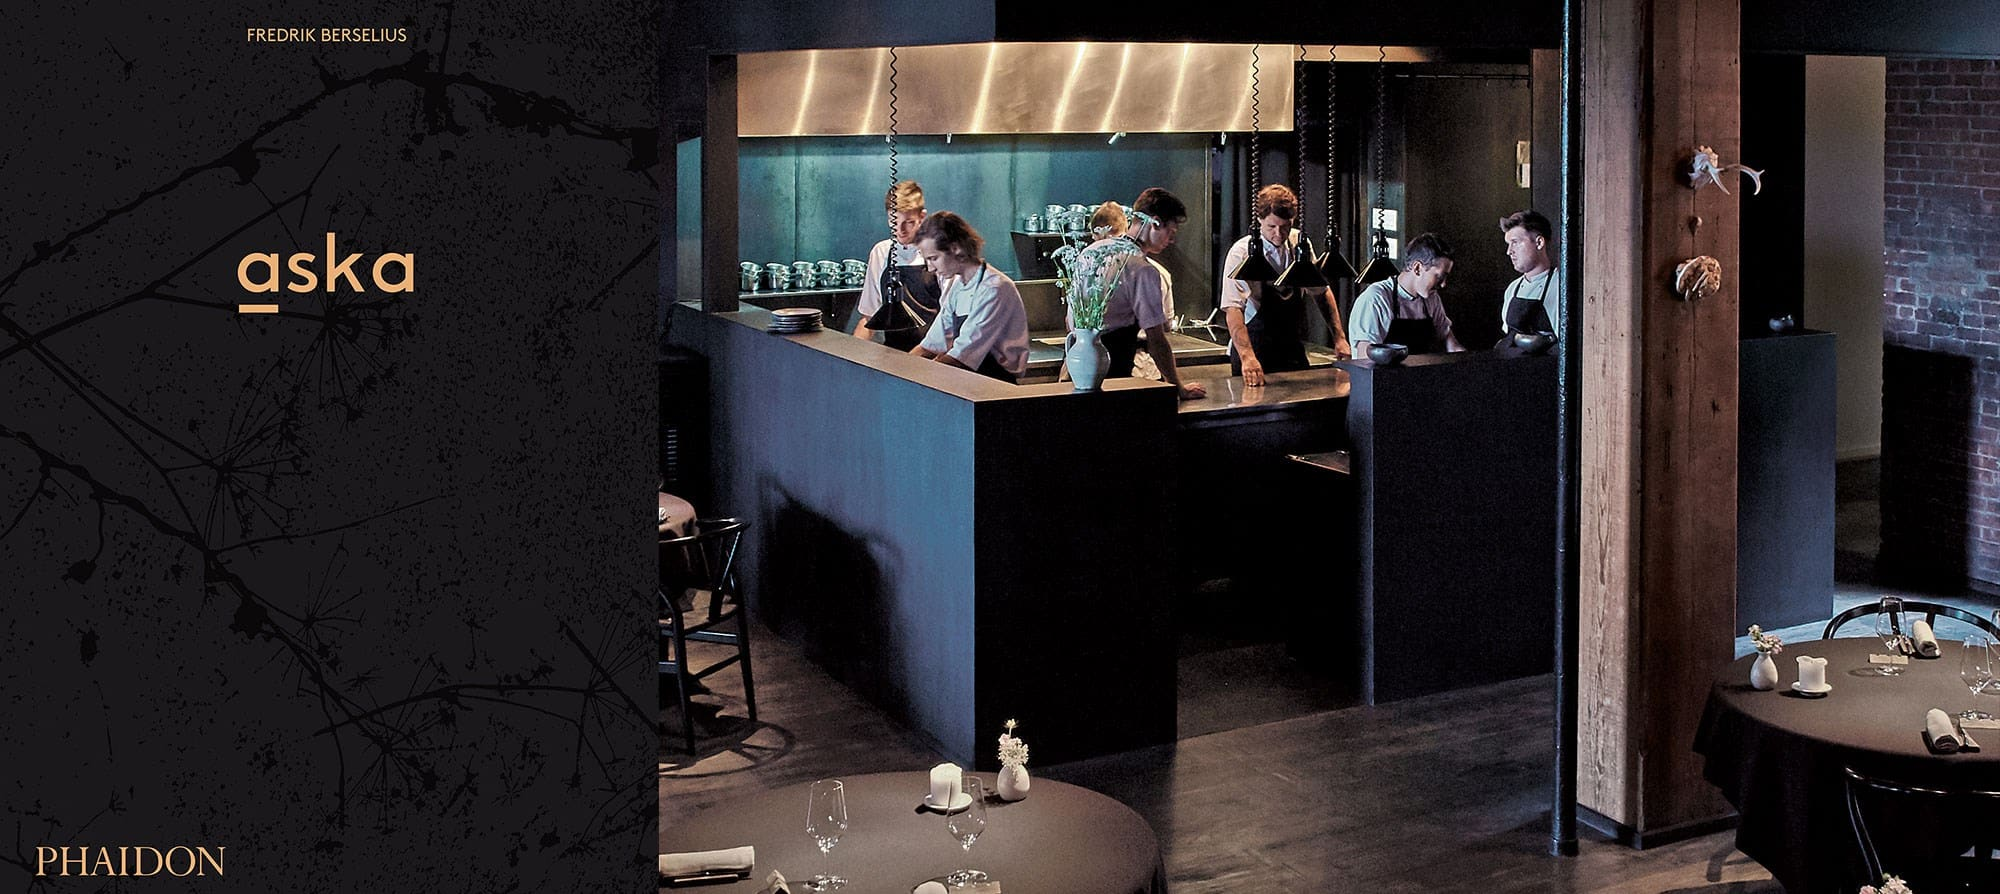 original_01-Aska-book-restaurant.jpg